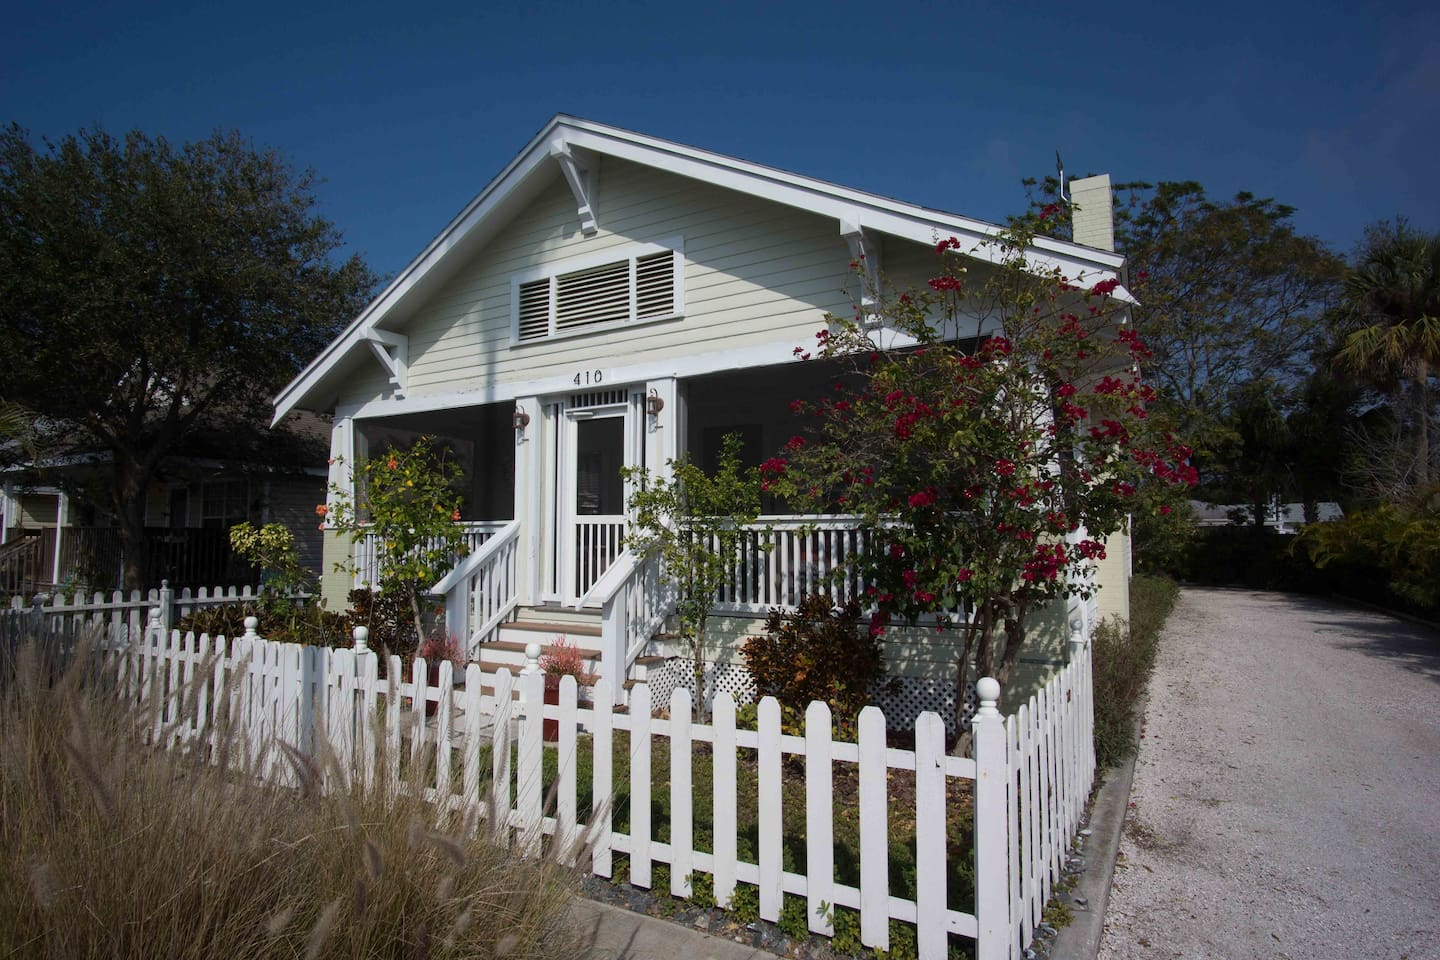 Welcome to Seashell Cottage...an authentic 1921 Craftsman bungalow, lovingly restored and updated.